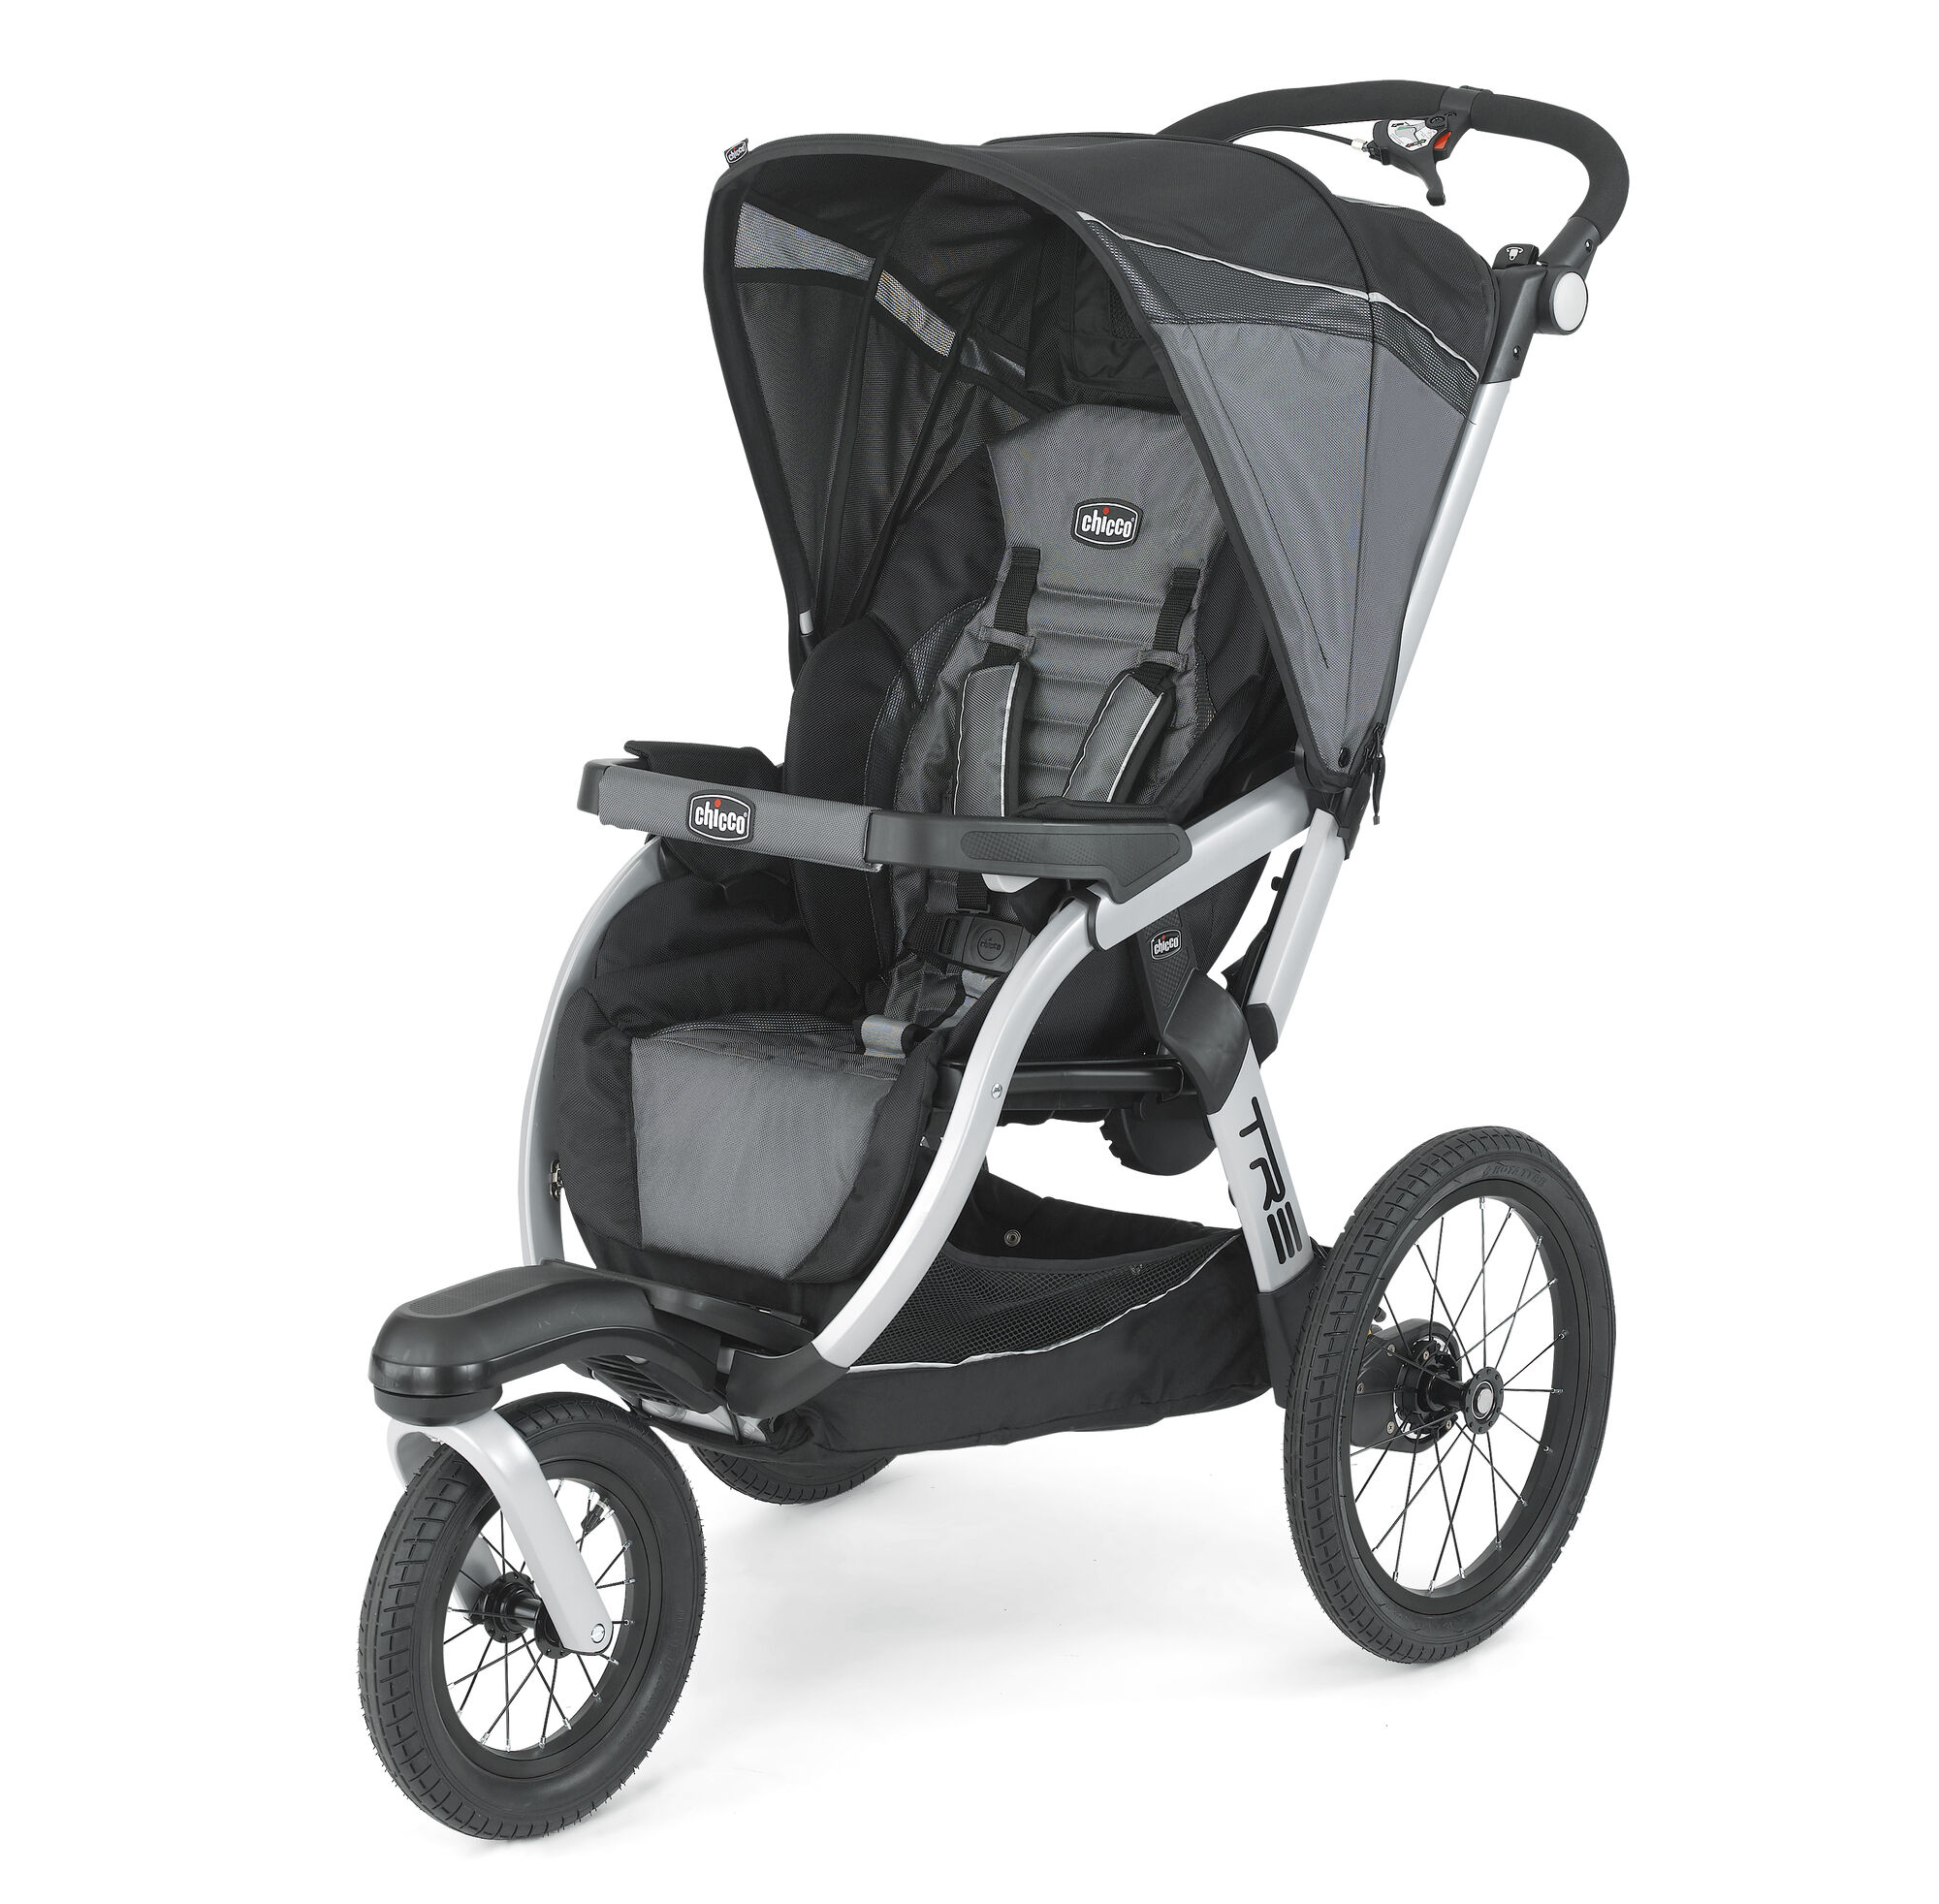 Top 10 Best Jogging Strollers: Enjoy A Fitness Day Out With Your Baby 13